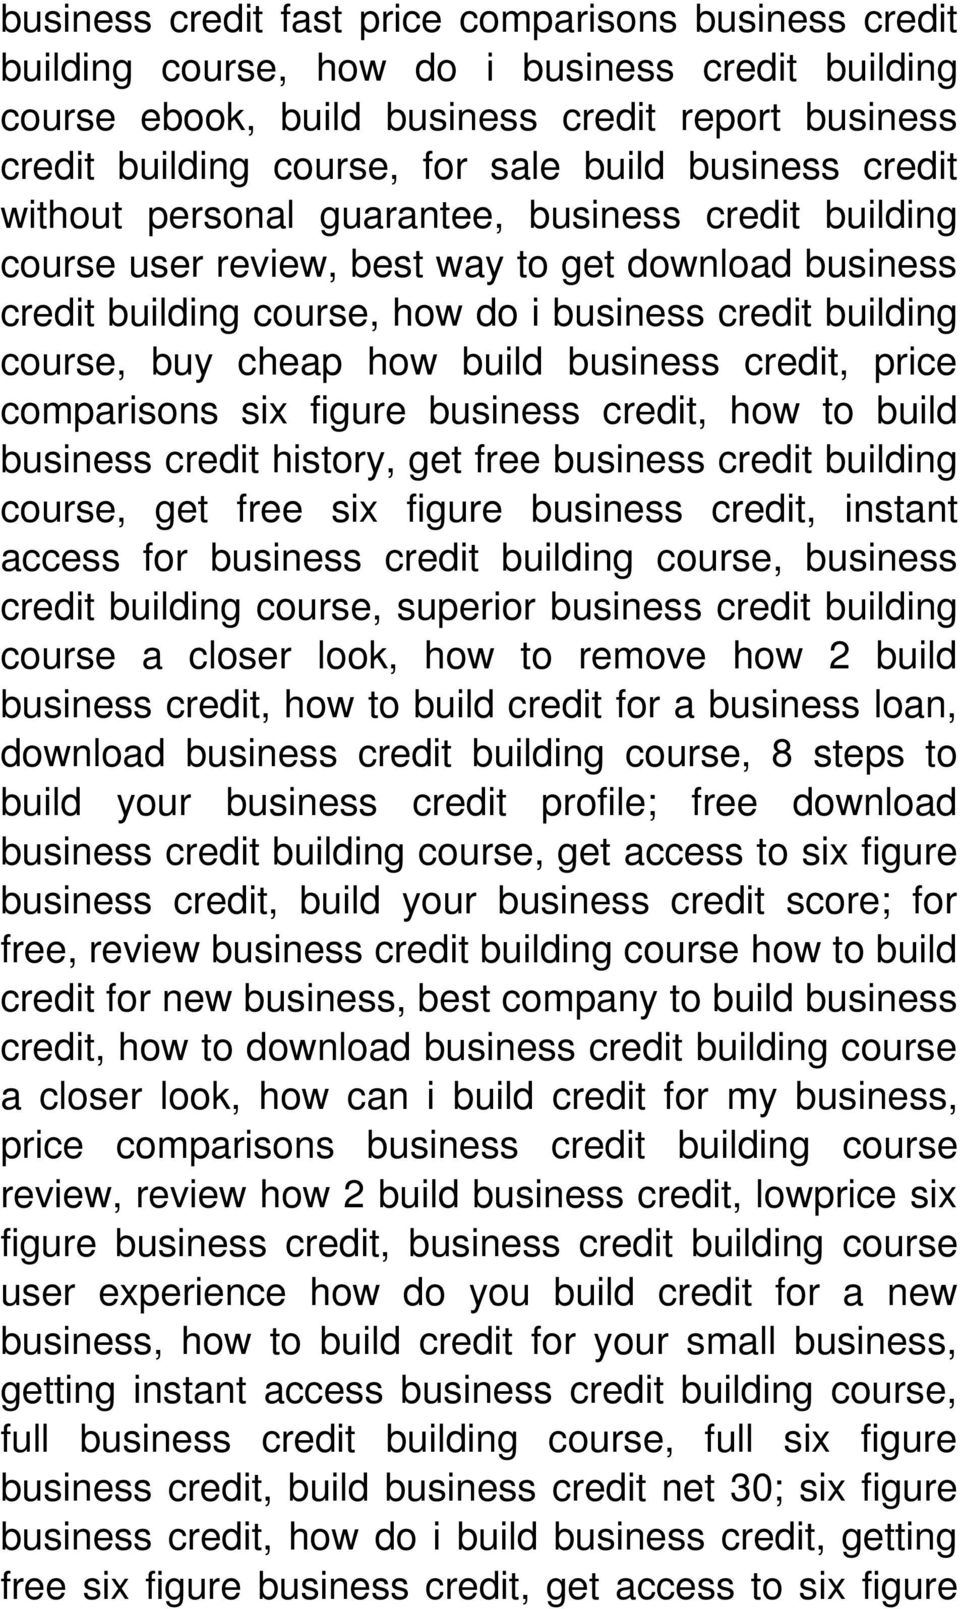 how build business credit, price comparisons six figure business credit, how to build business credit history, get free business credit building course, get free six figure business credit, instant